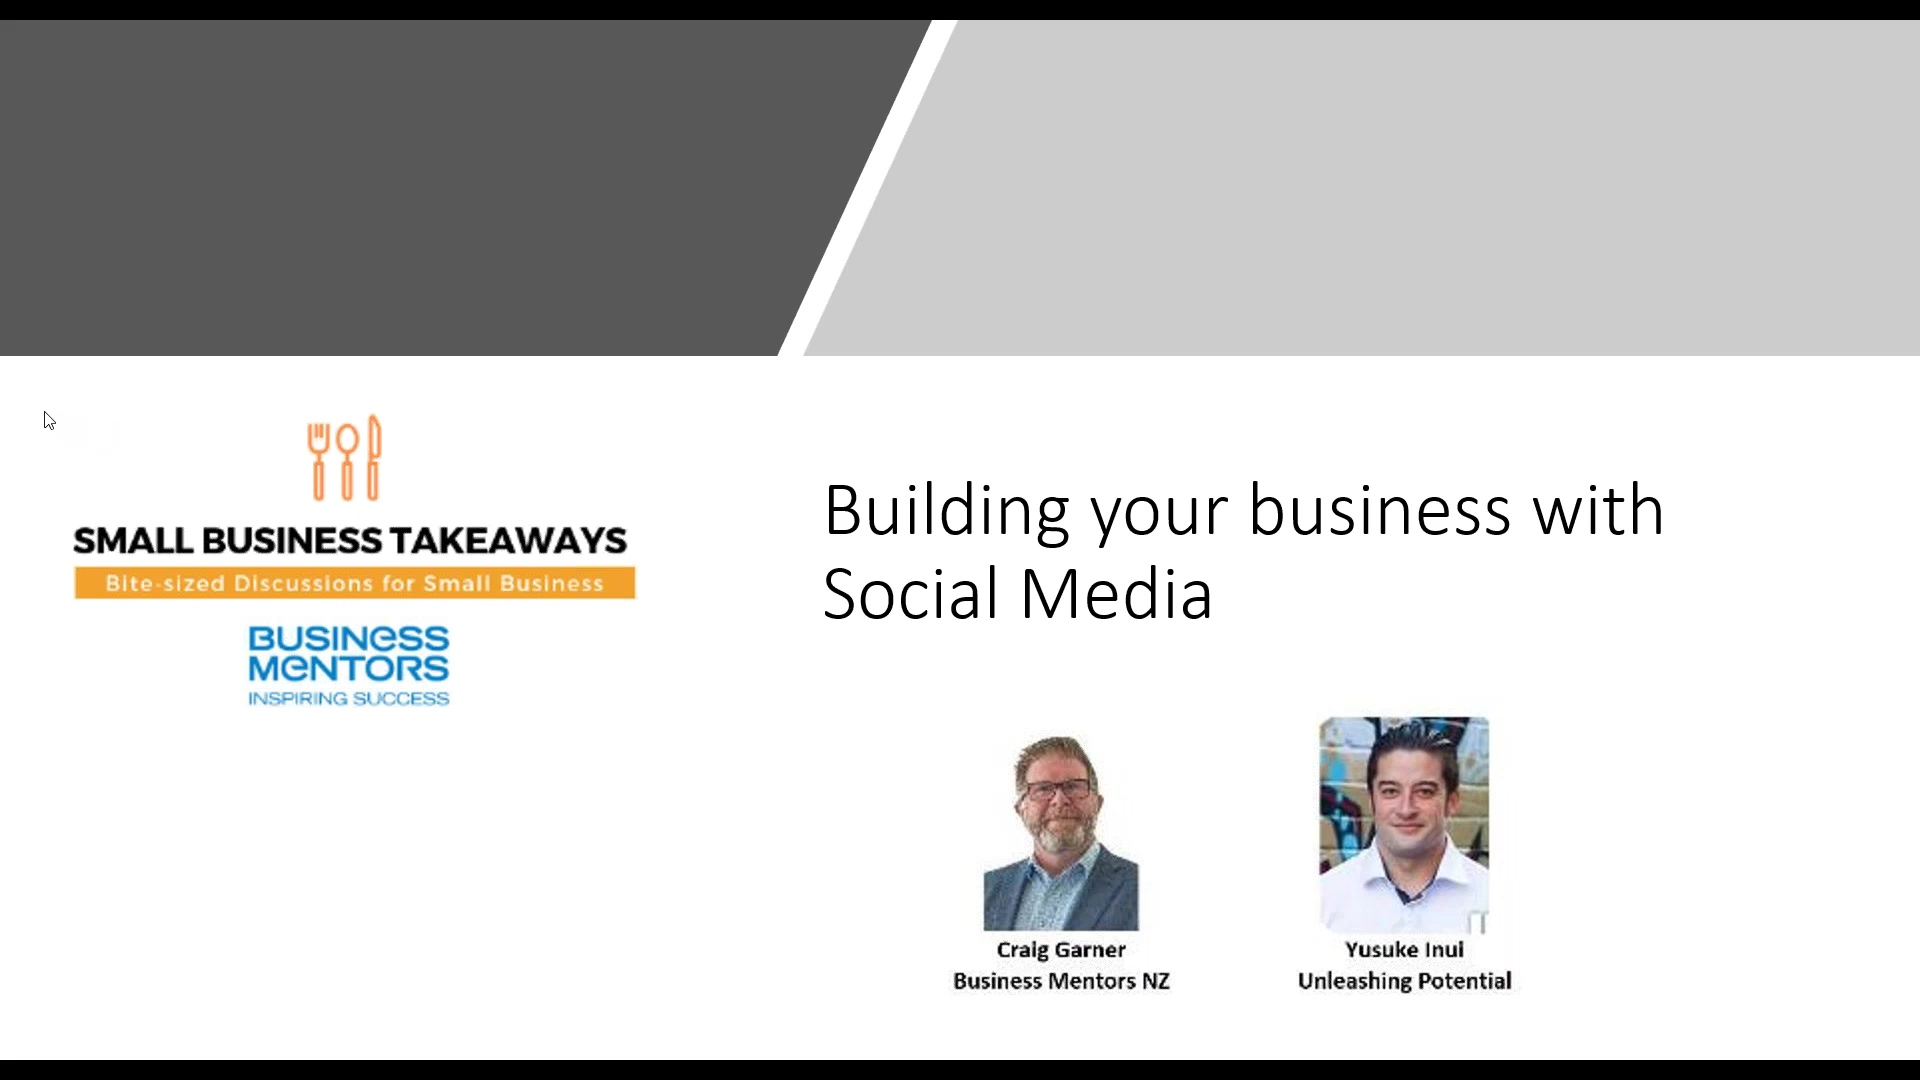 Business Mentors NZ_ Small Business Takeaways - Building your Business with Social Media